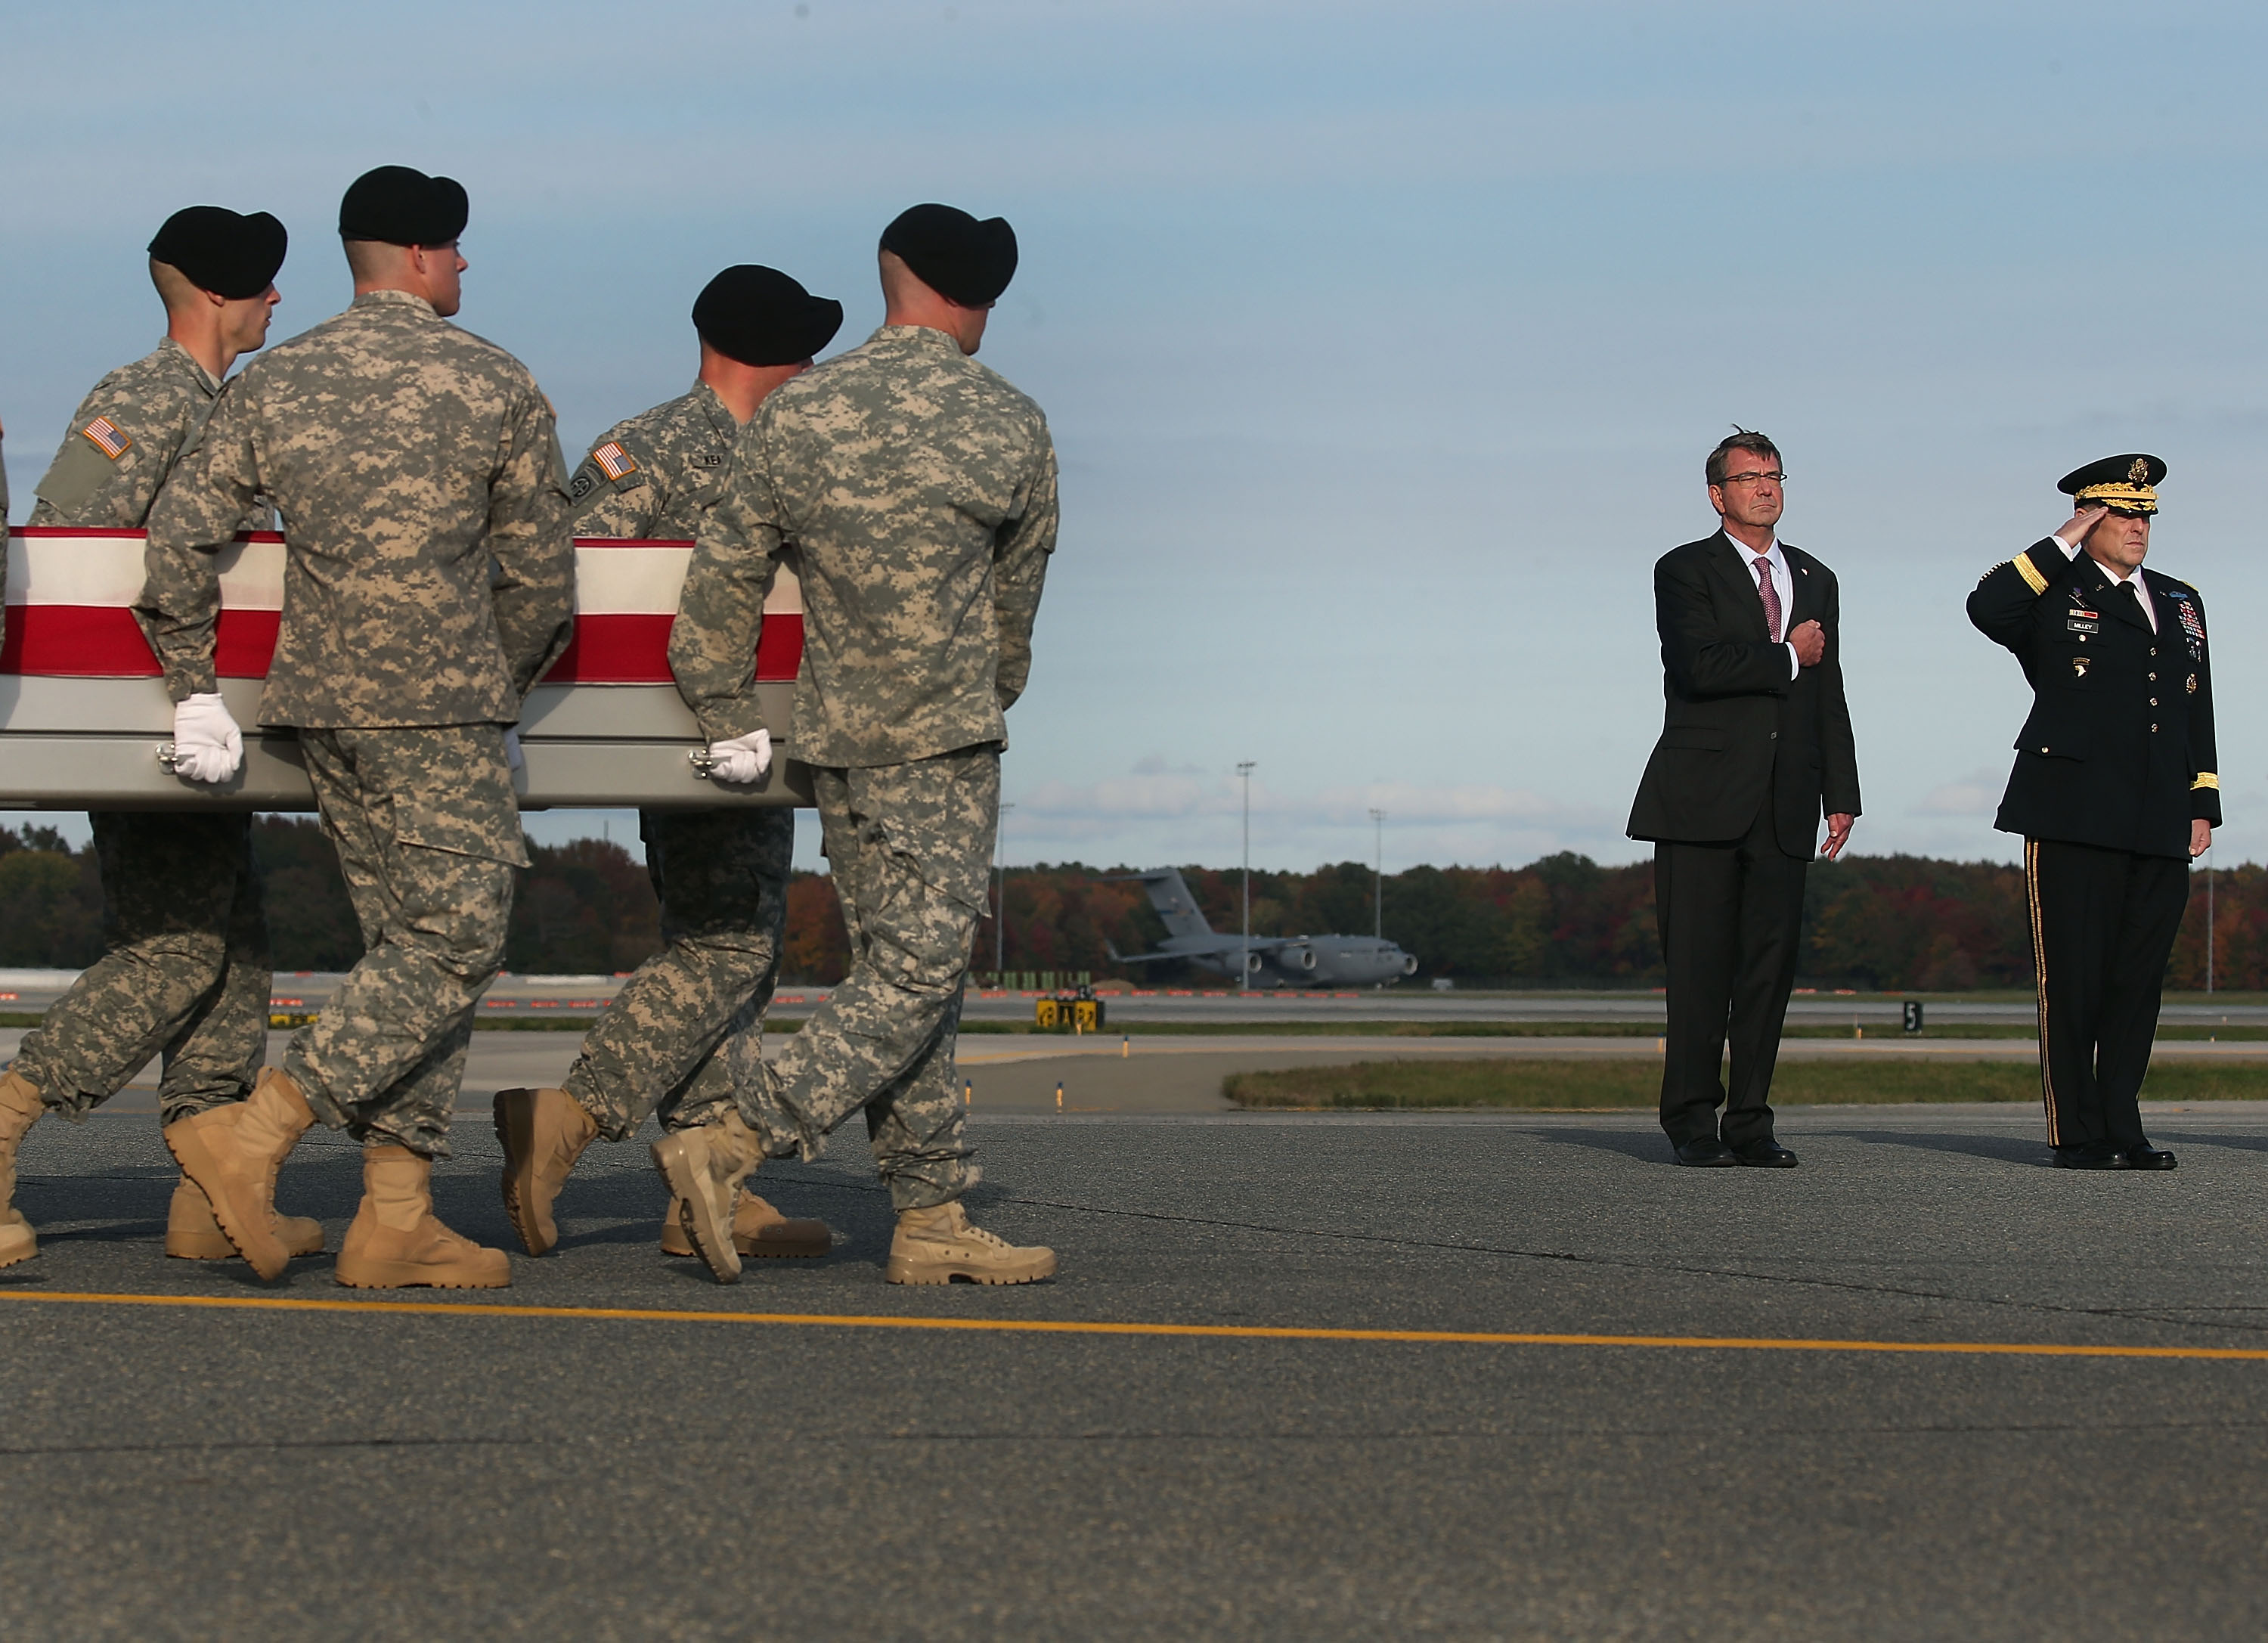 US Secretary of Defense Ash Carter stands at attention with US Army Chief of Staff Gen. Mark Milley while a U.S. Army carry team moves the transfer case of U.S. Army Master Sgt. Joshua L. Wheeler during a dignified transfer at Dover Air Force Base on October 24, 2015 in Dover, Delaware. (Mark Wilson/Getty)